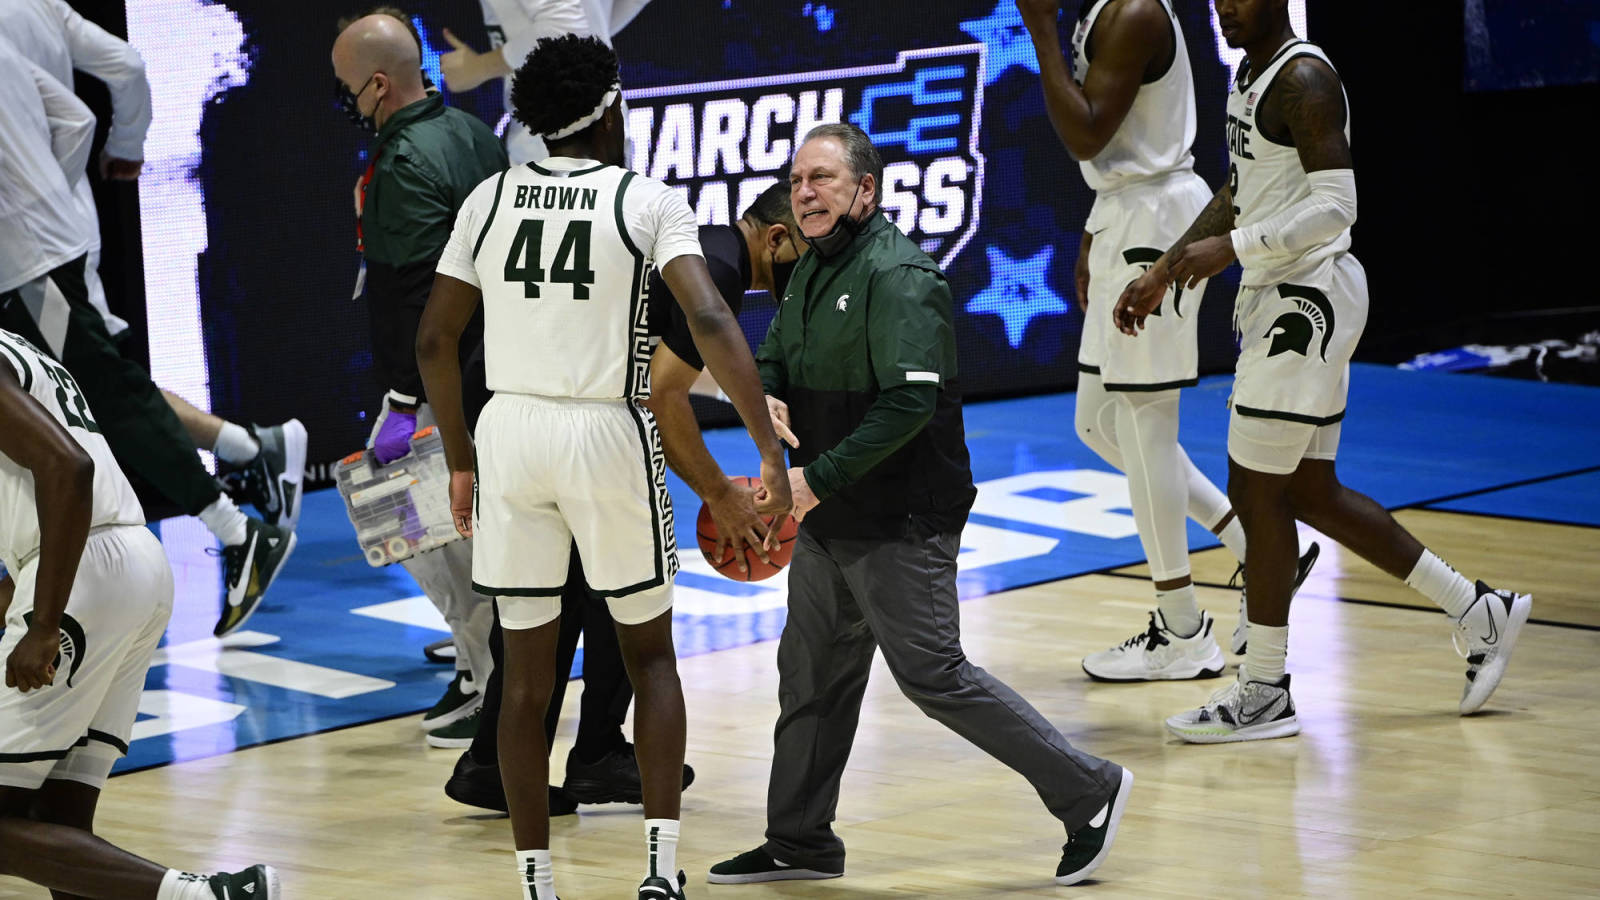 Michigan State's Tom Izzo, Gabe Brown get into heated exchange at halftime vs. UCLA